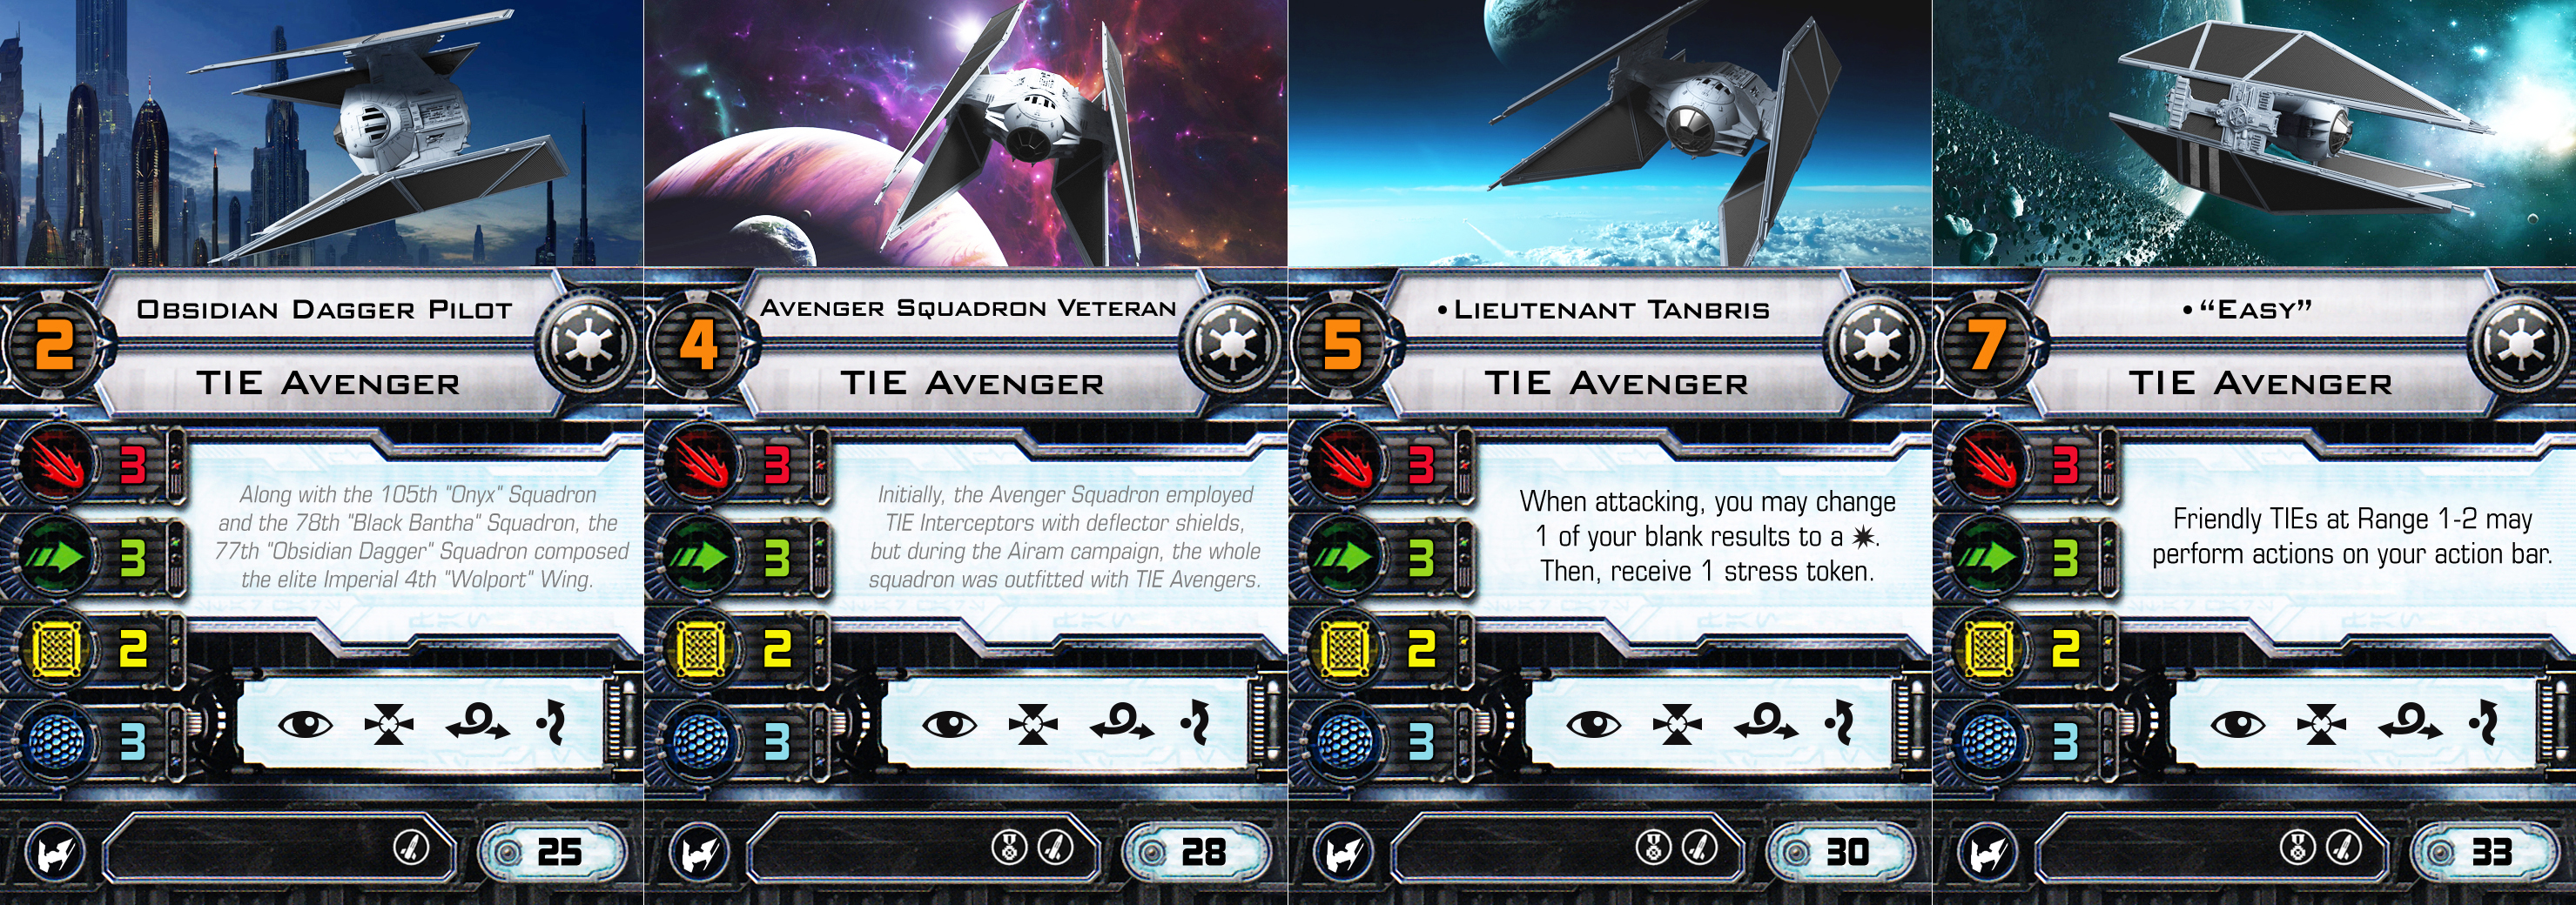 x_wing_miniatures__tie_avenger_pilots_by